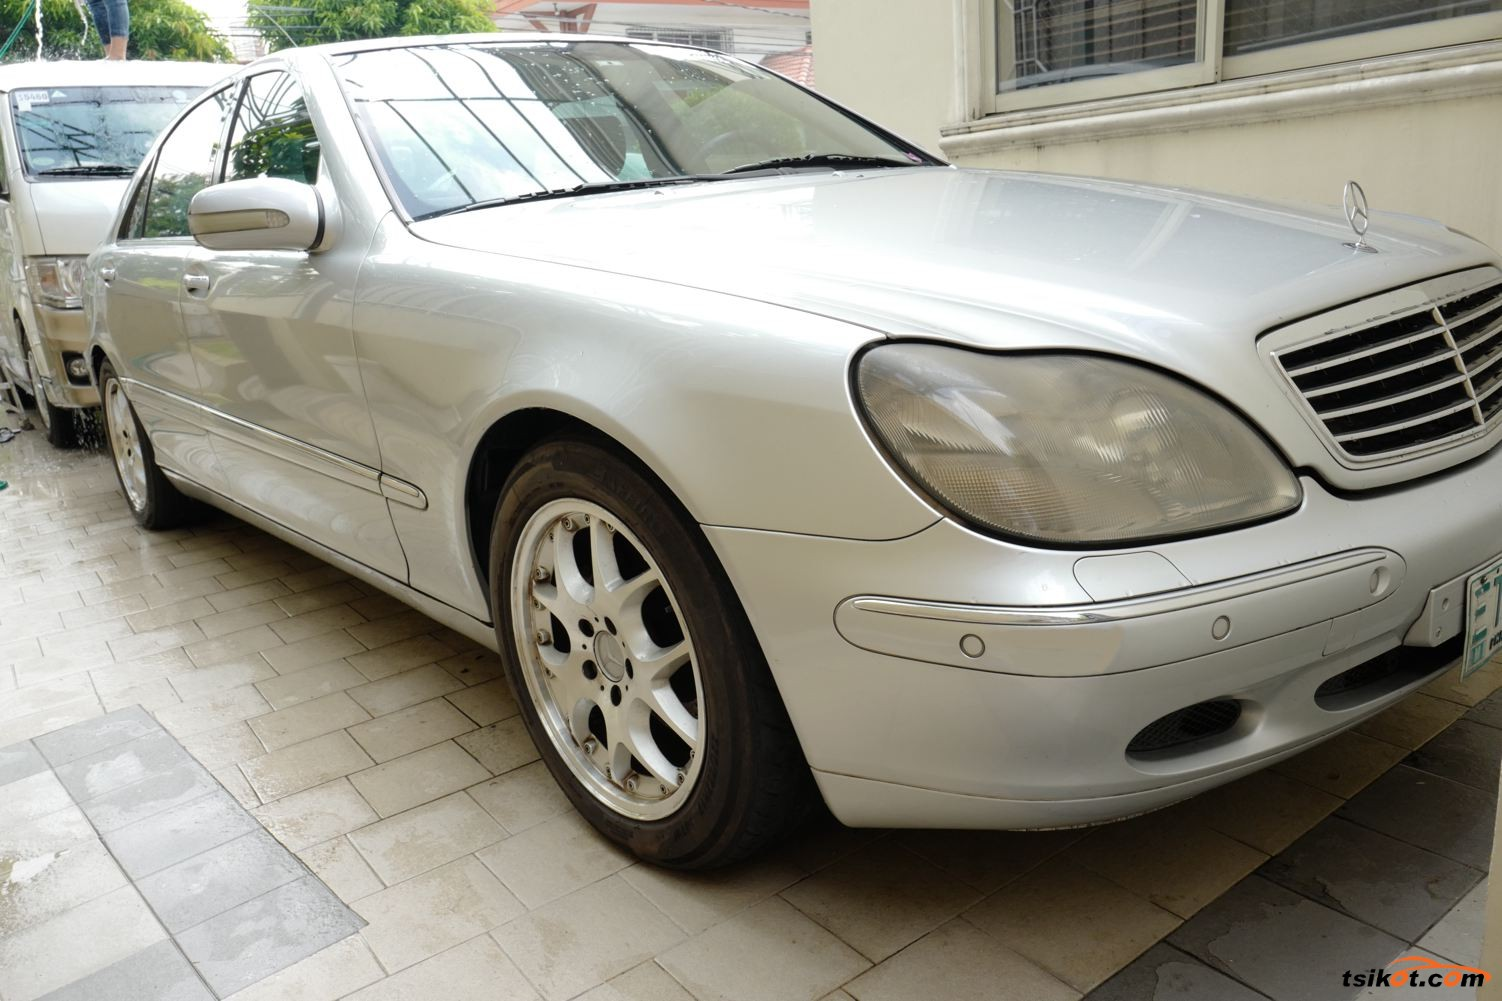 Mercedes benz s class 2007 car for sale metro manila for Mercedes benz s550 coupe for sale